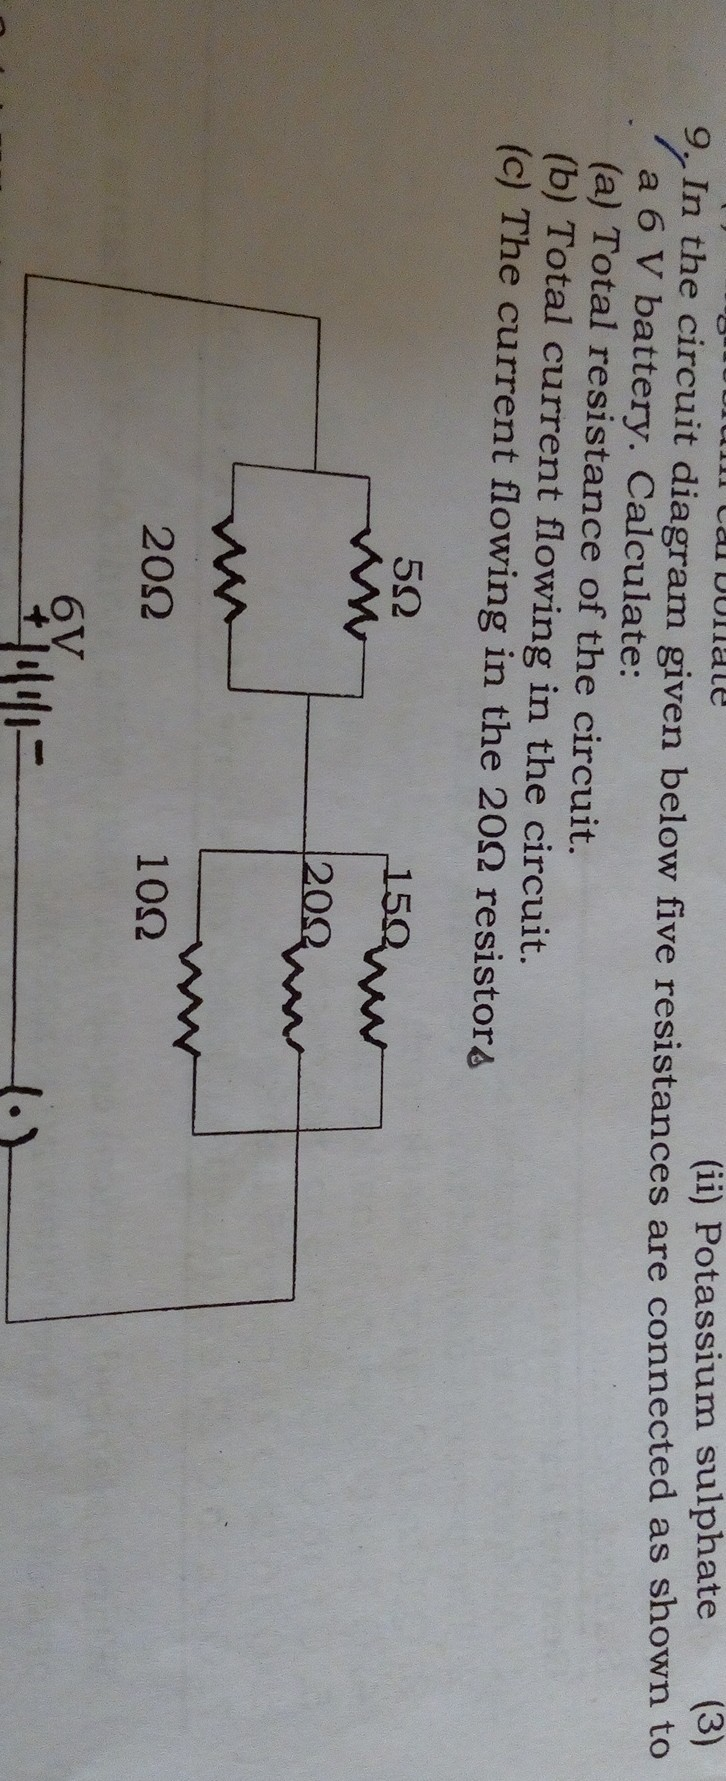 In The Circuit Diagram Given Below 5 Resistance Is Connected As